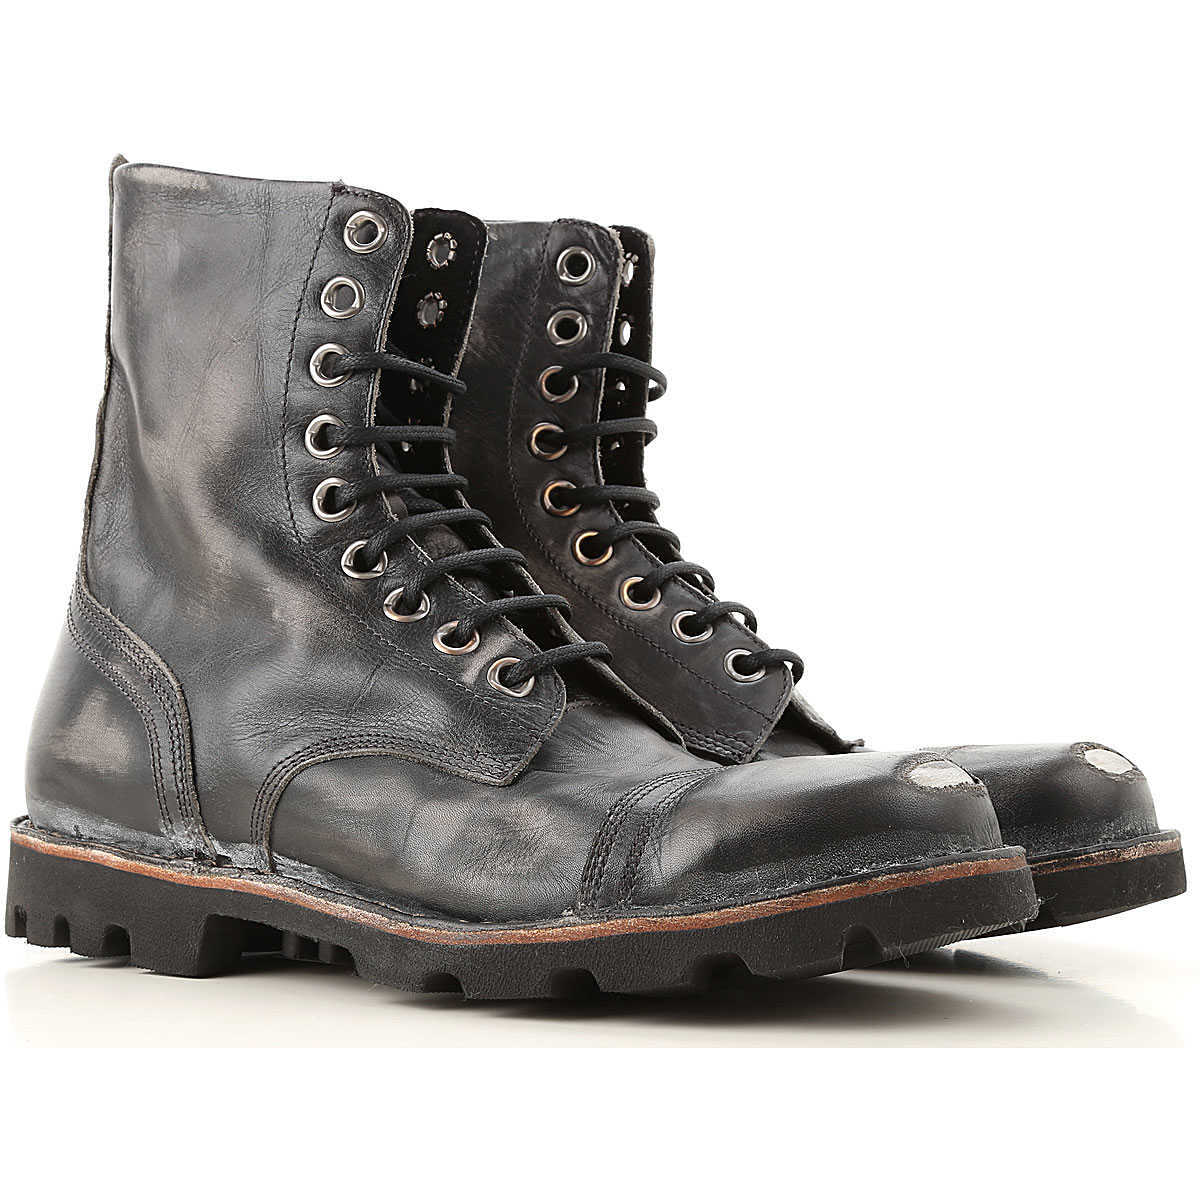 Diesel Boots for Men Booties Canada - GOOFASH - Mens BOOTS